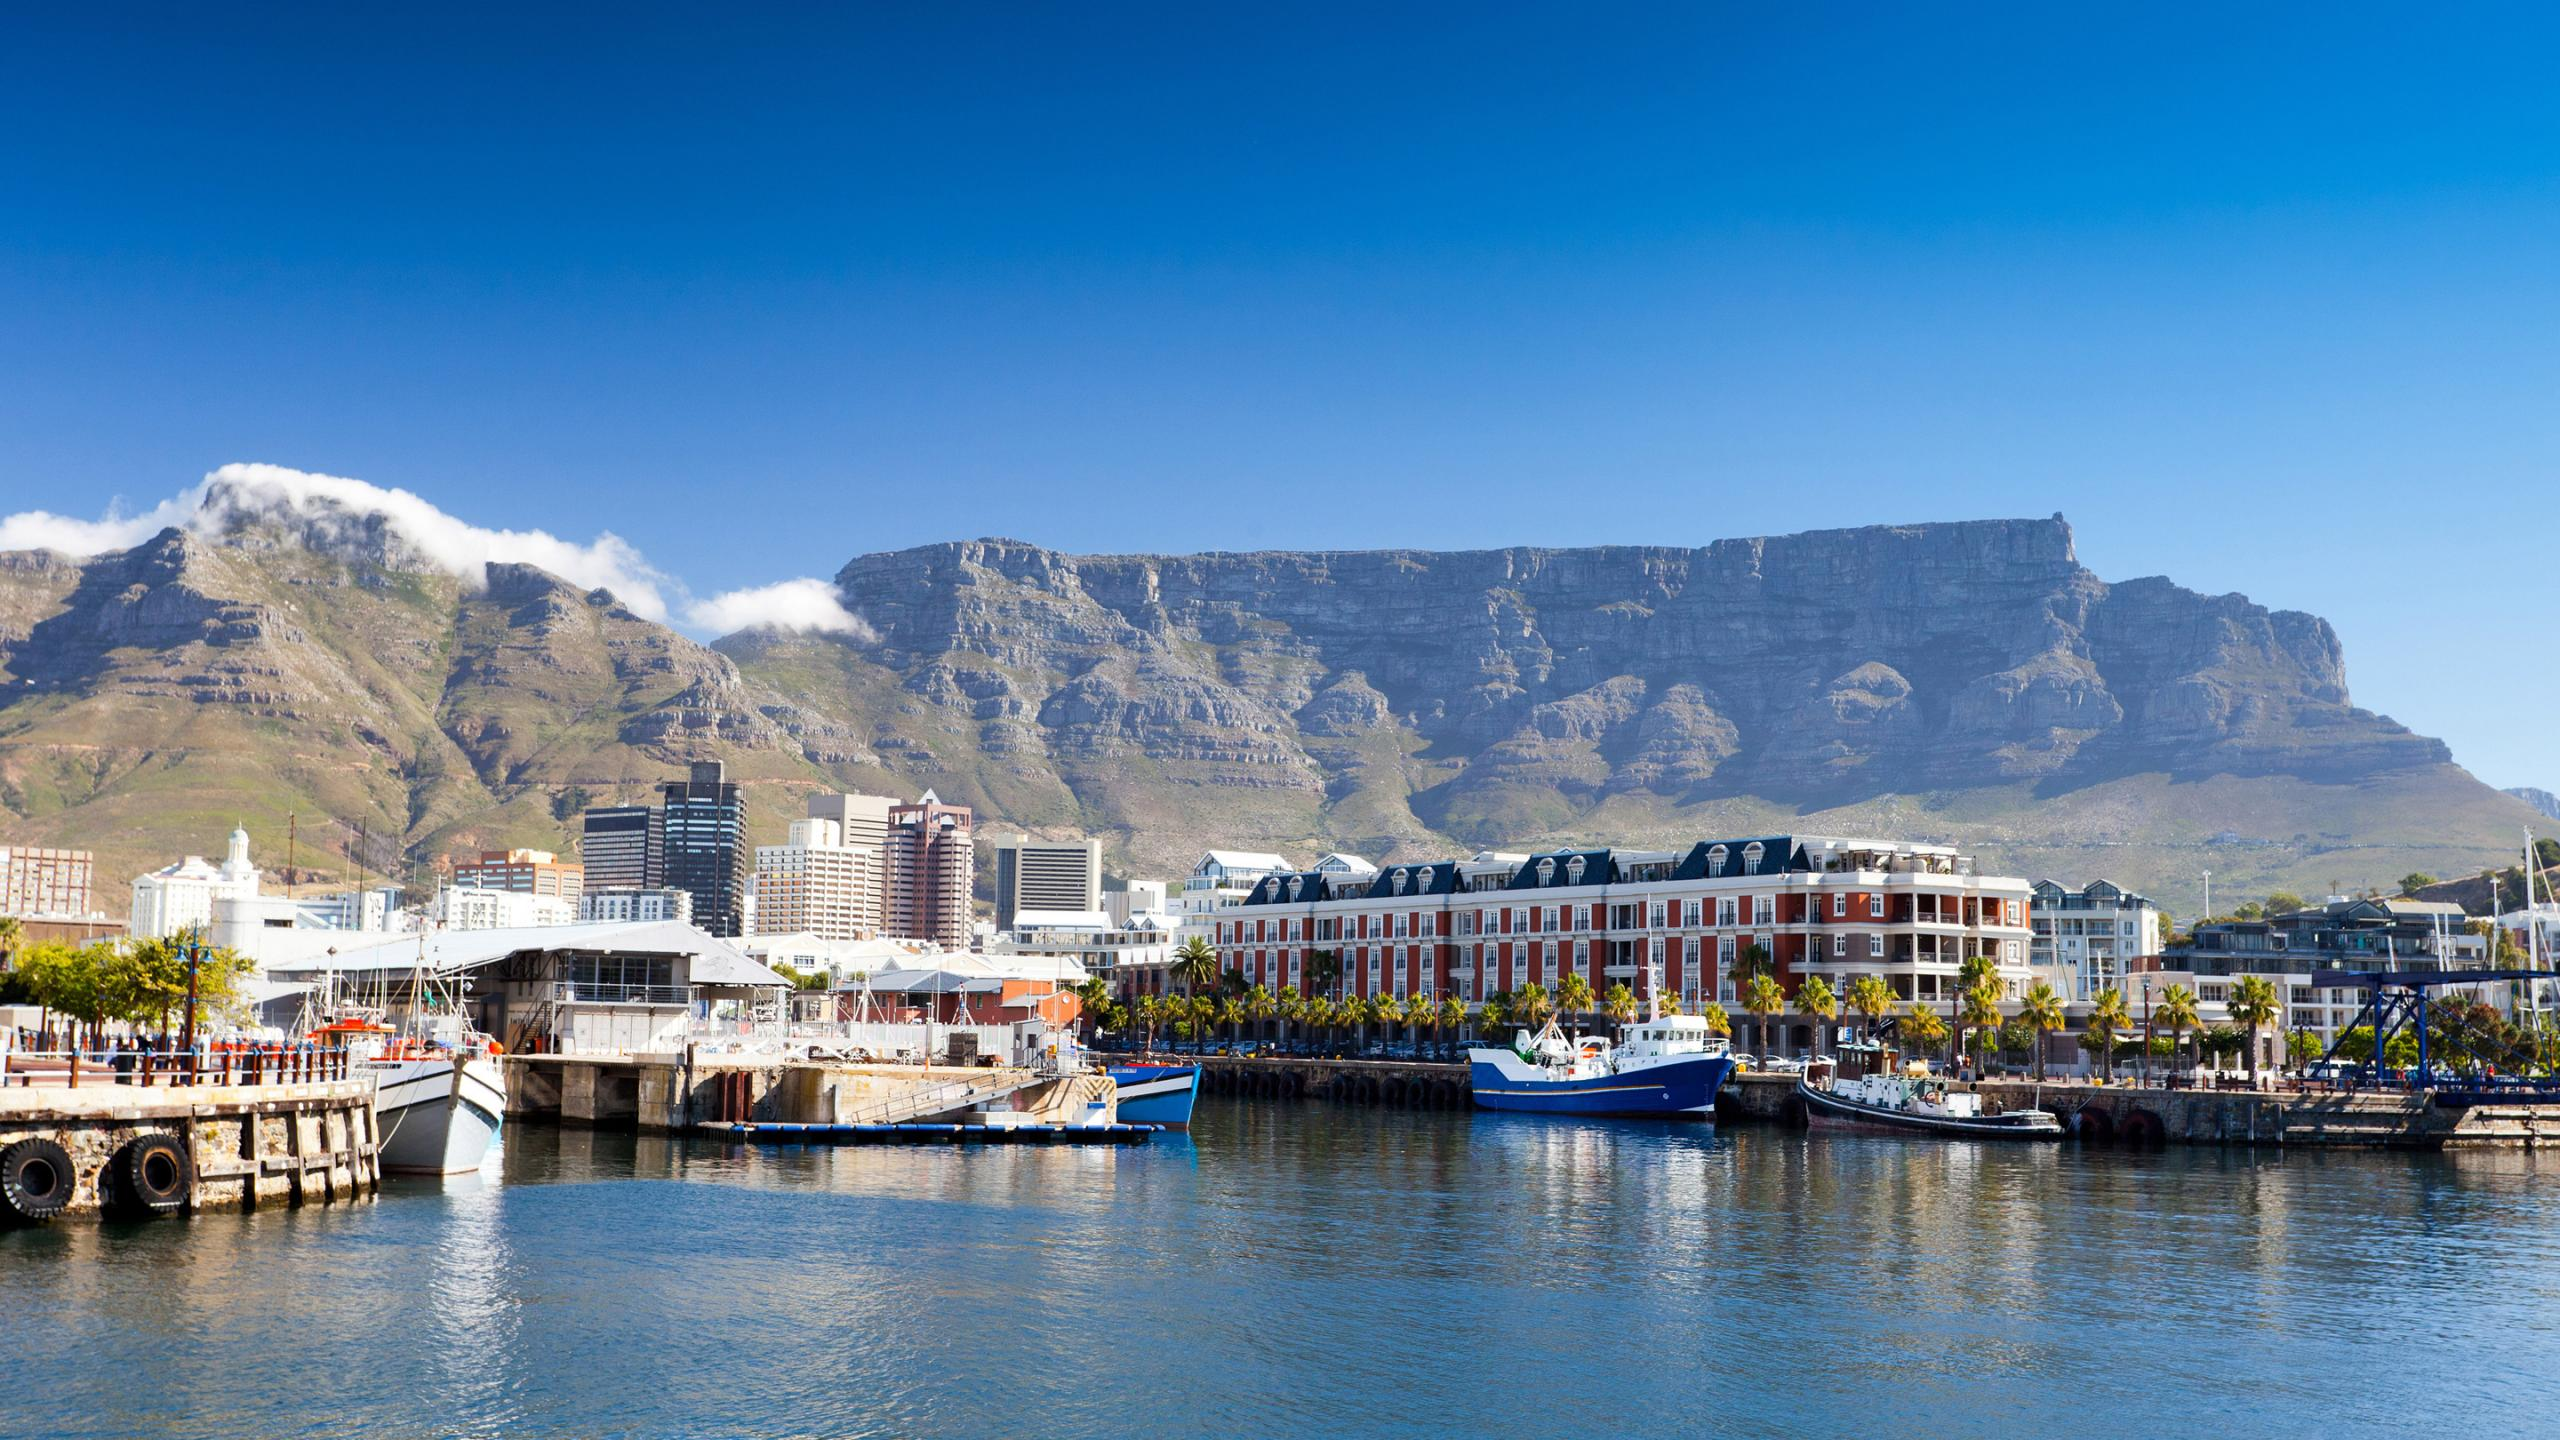 http://www.prasannaholidays.com/wp-content/uploads/2014/05/8200685-cape-town-wallpapers.jpg